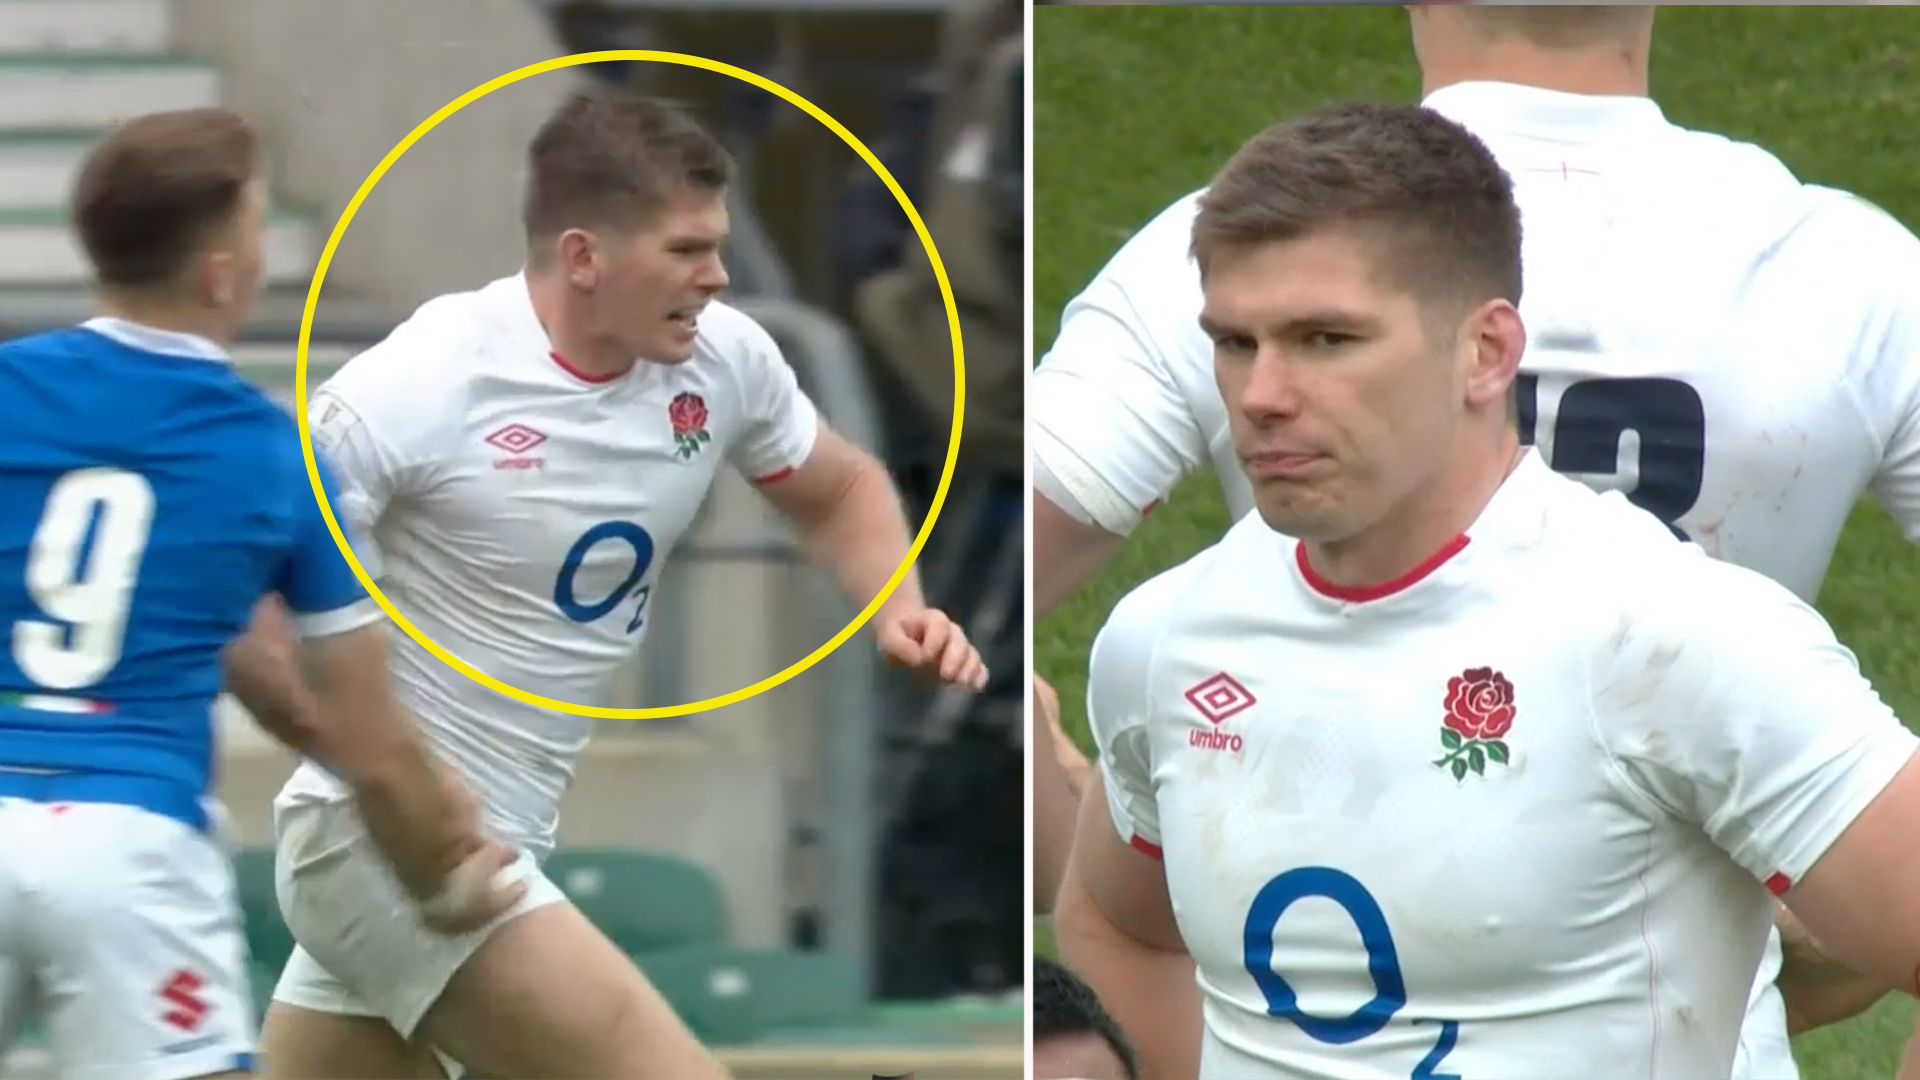 'He's a ****ing moron' - fierce social media backlash after Owen Farrell moment in England Rugby clash